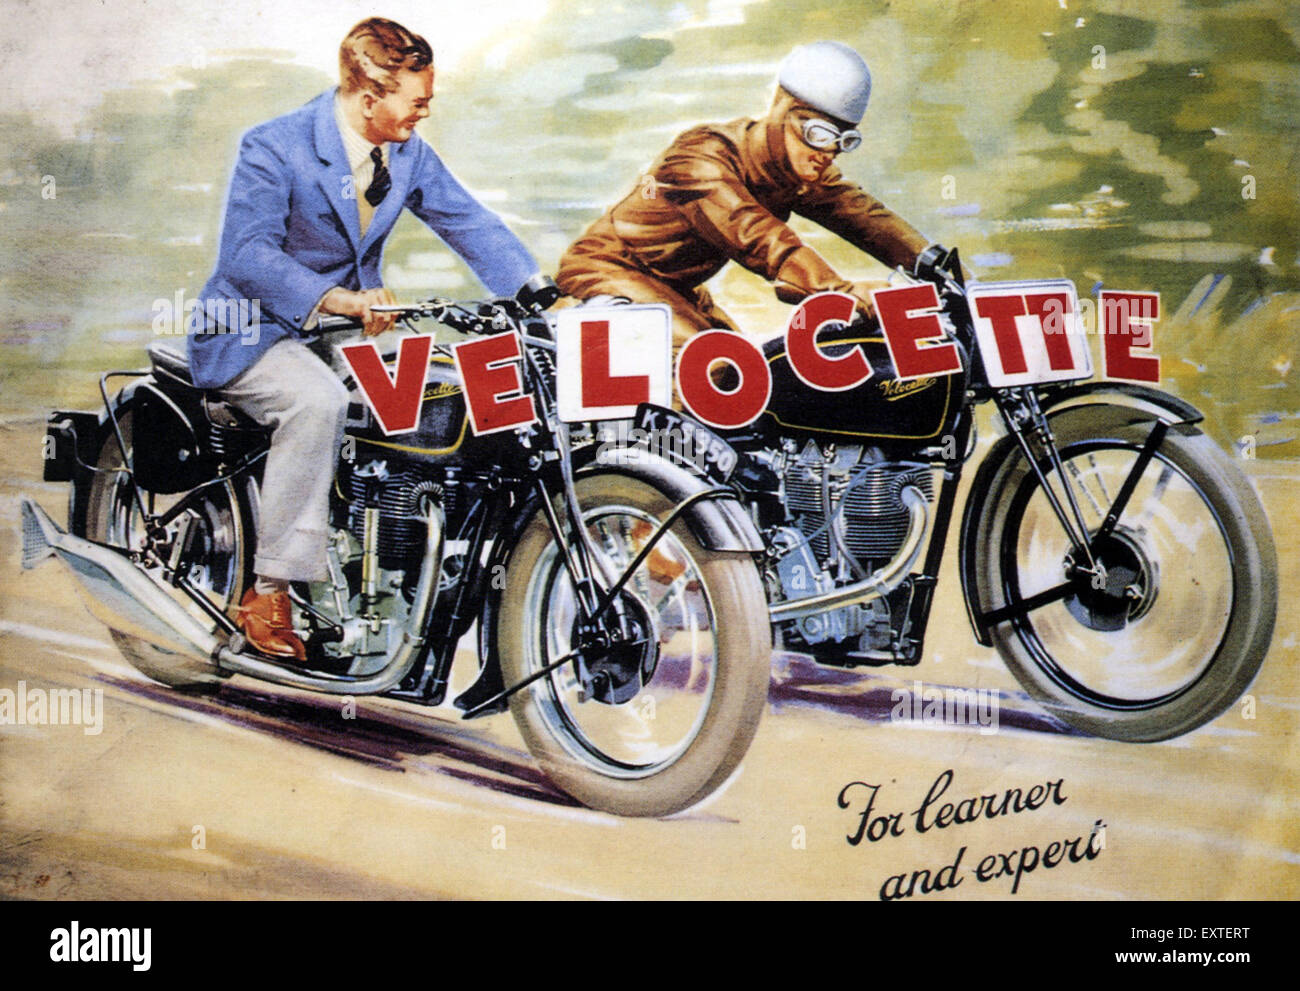 UK Velocette Magazine Advert - Stock Image